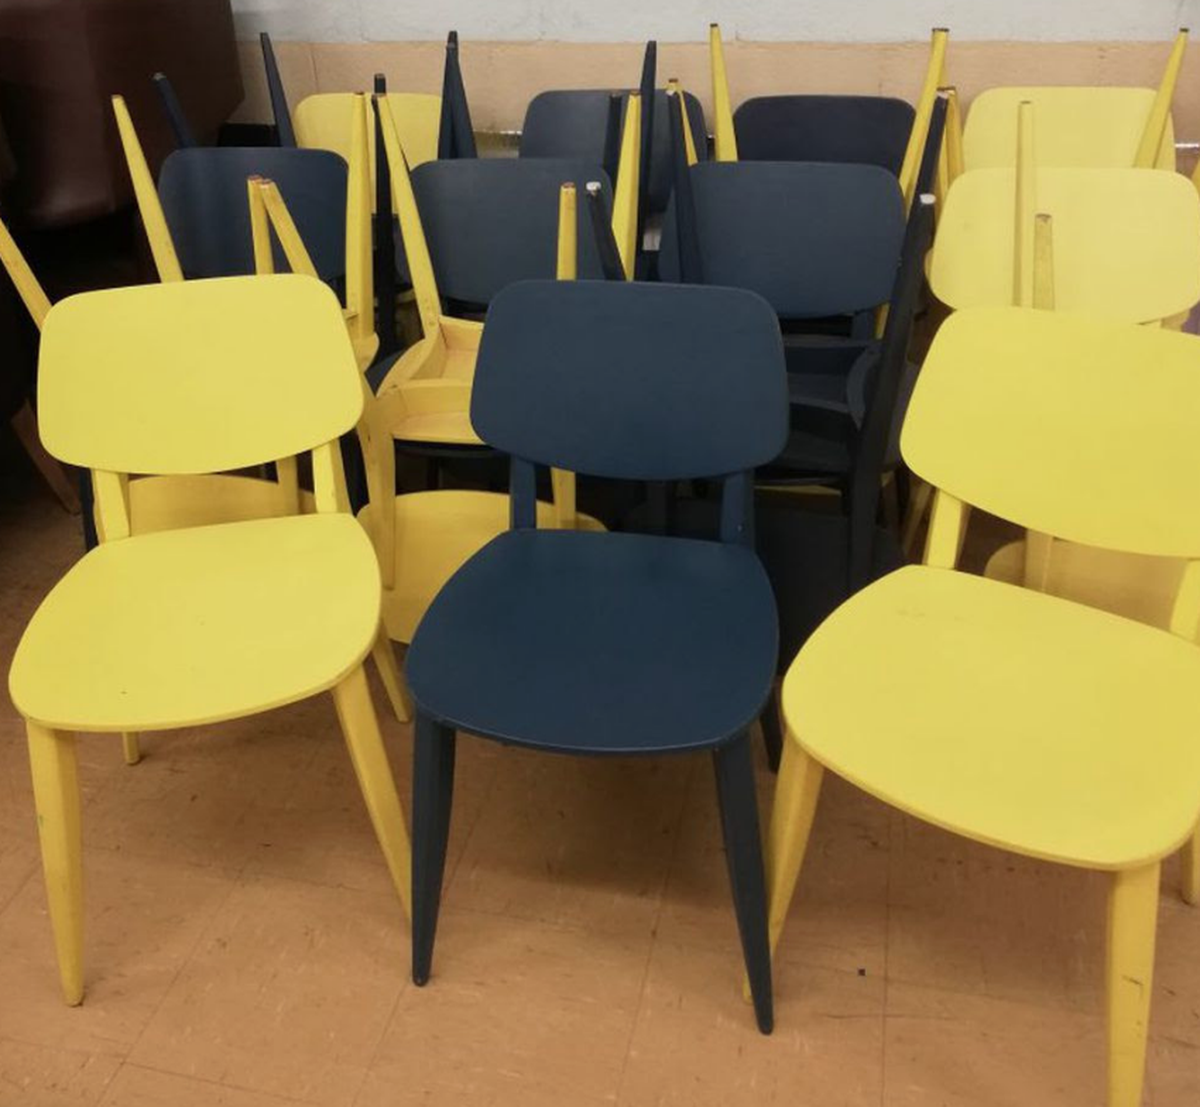 Secondhand Chairs And Tables Cafe Or Bistro Chairs Job Lot 19